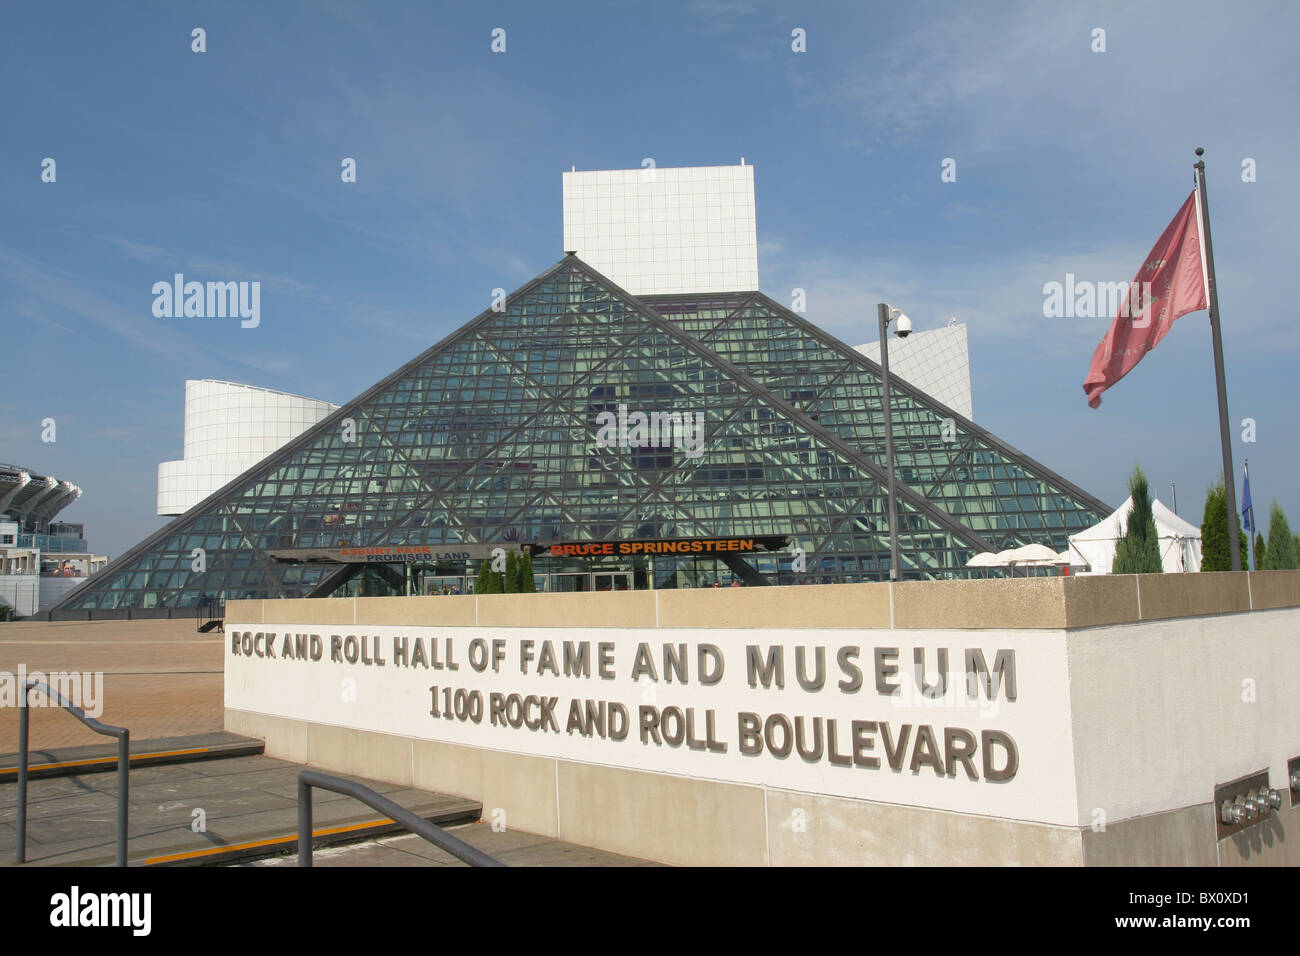 Rock Roll Hall Fame Museum Stock Photos & Rock Roll Hall Fame Museum ...